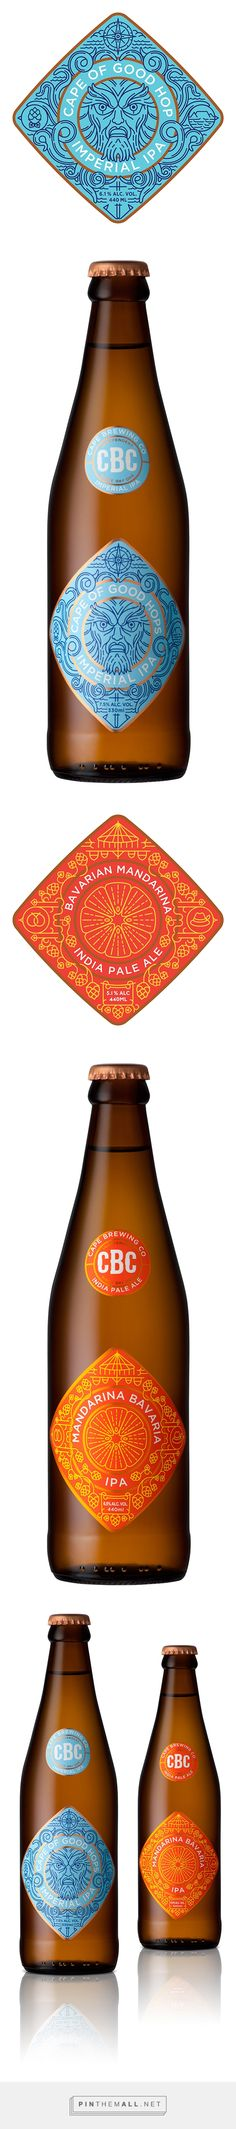 Cape Brewing Company packaging designed by  MUTI